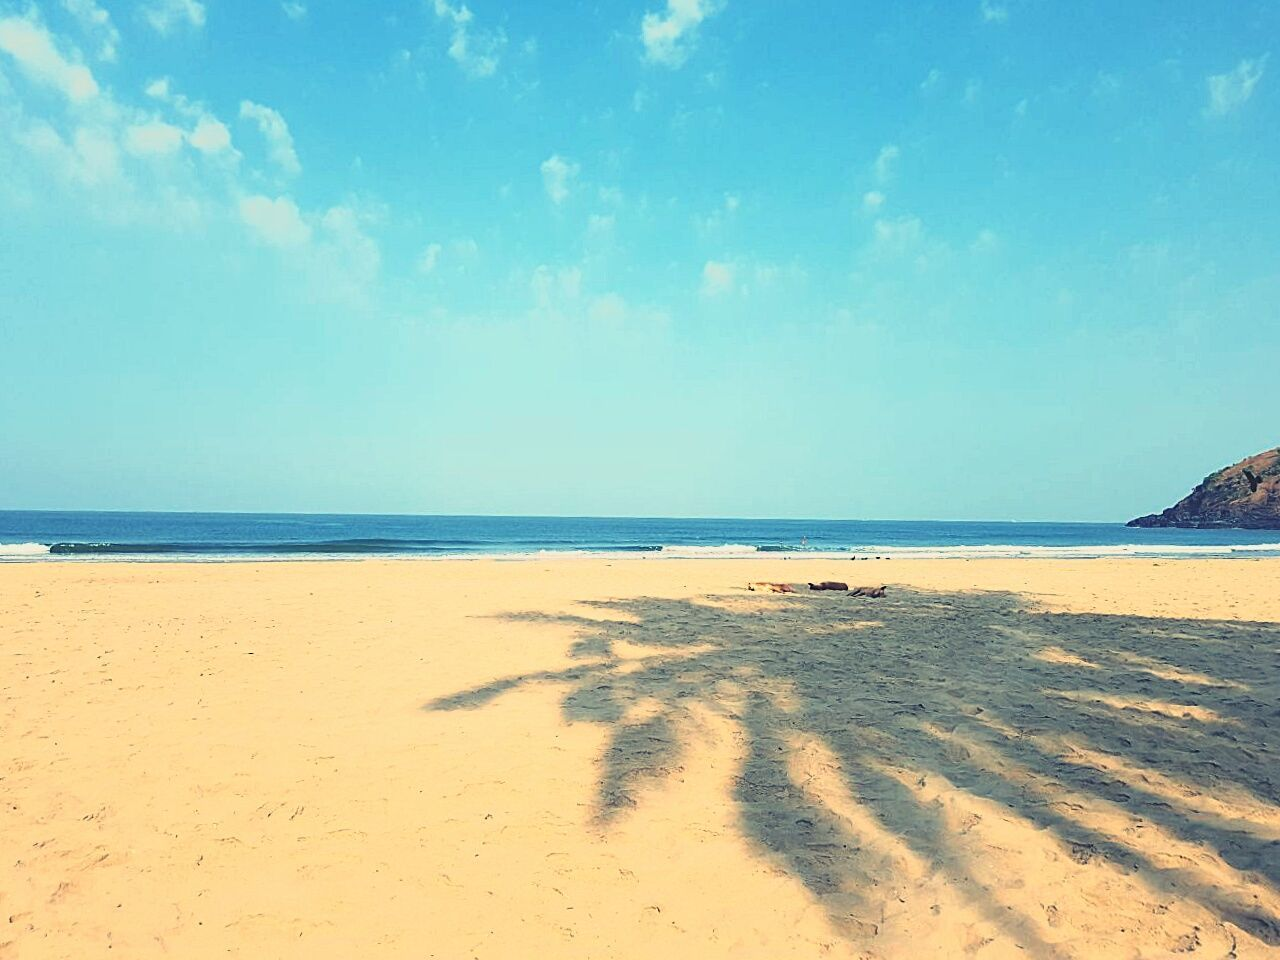 Beach Sand Sea Seascape Horizon Over Water Coastline Sunny Landscape Vacations Sky Blue Summer Travel Destinations Outdoors Tourism Nature Tranquility Sand Dune FootPrint Tranquil Scene Seascape Photography Indiabeaches Sand & Sea Beach Photography EyeEmNewHere 📍